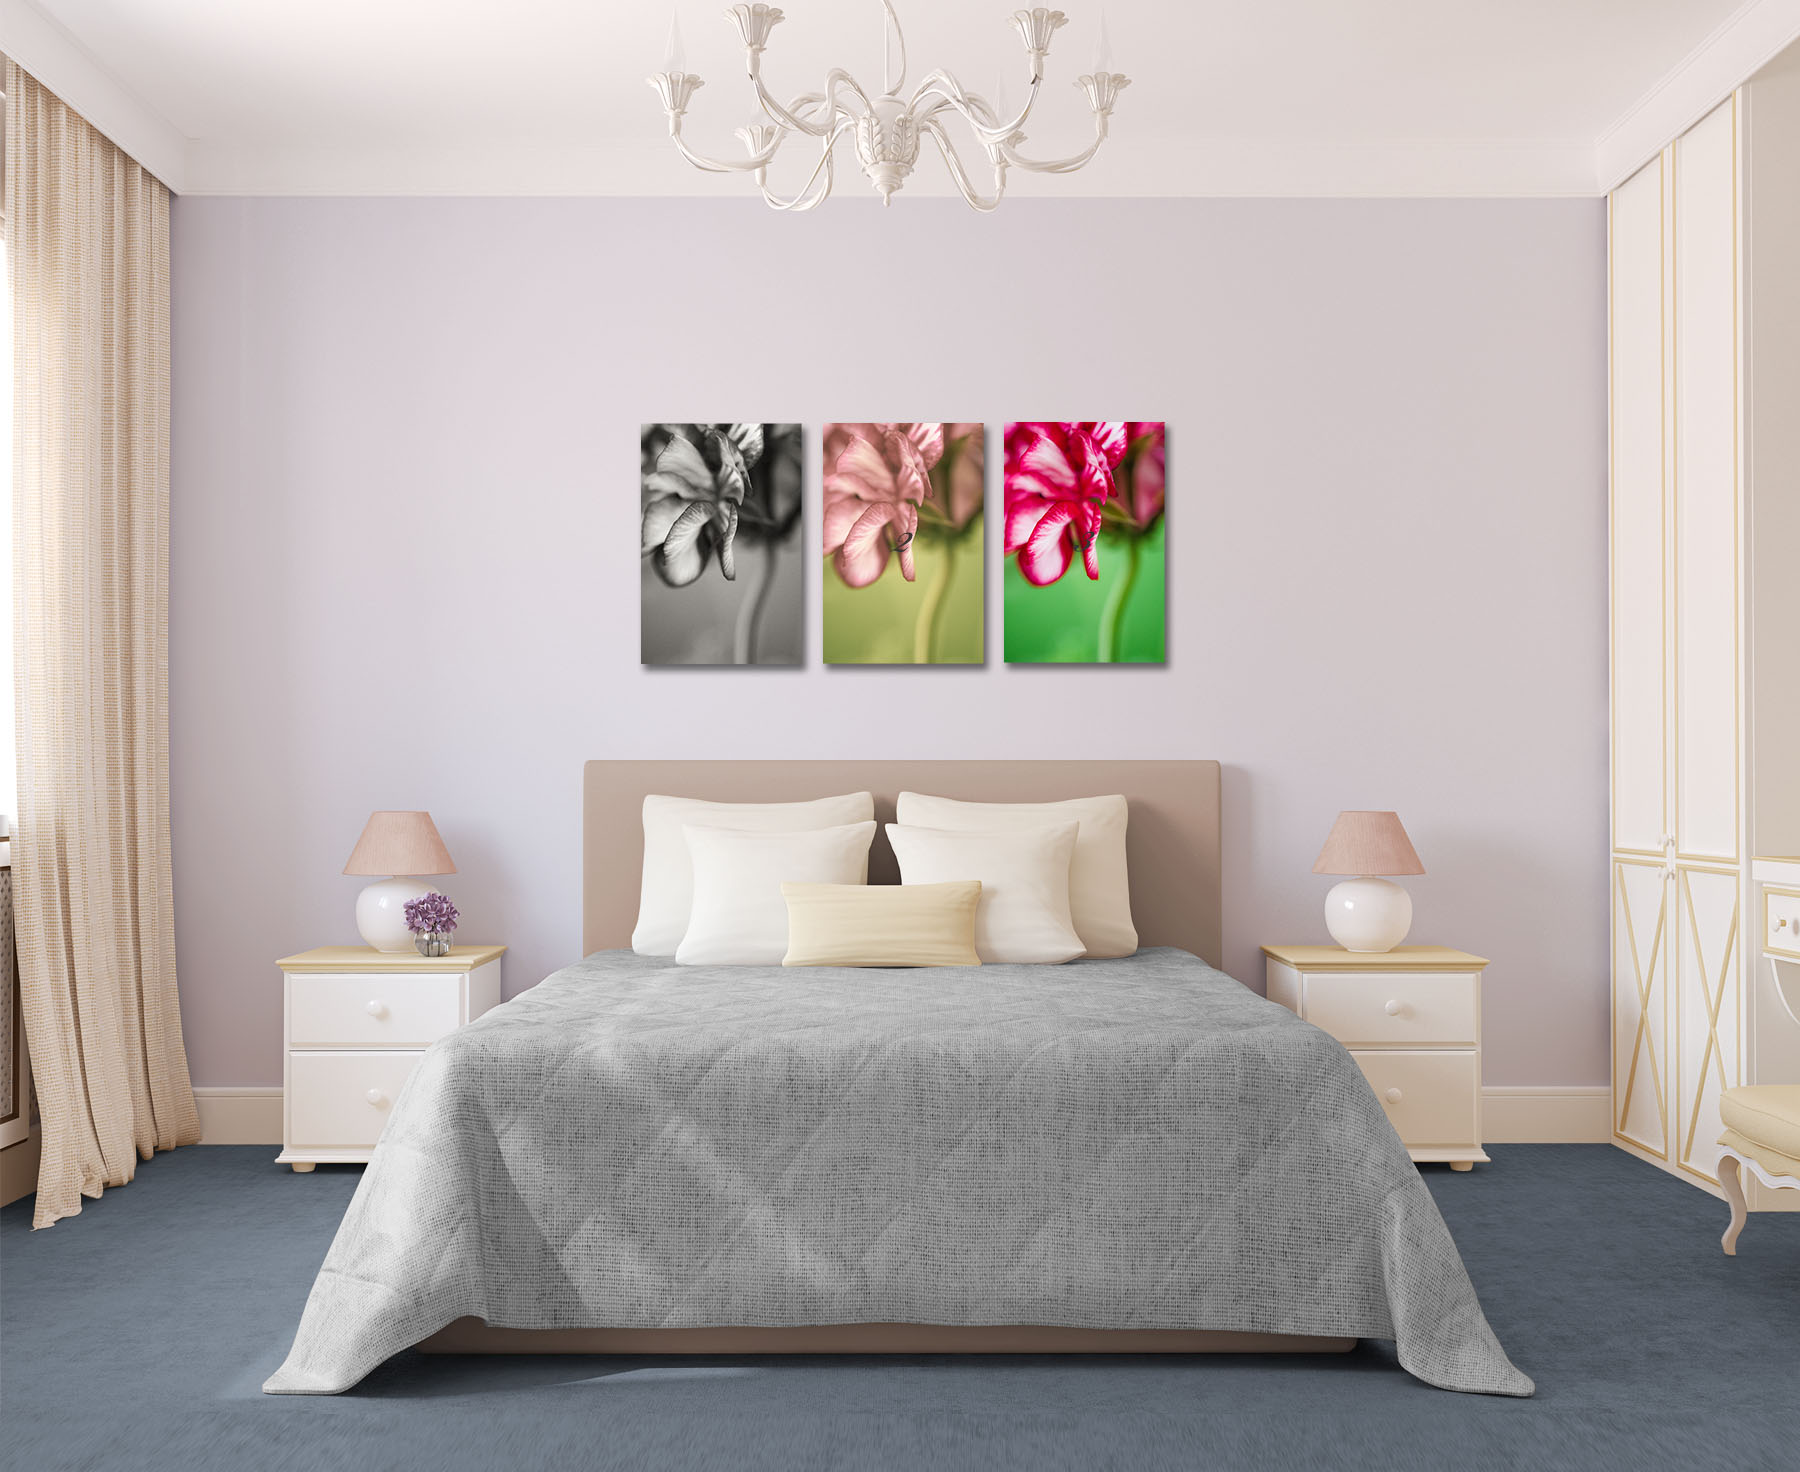 The Geranium Series as a Triptych (and any of the images can work together, not just these 3)